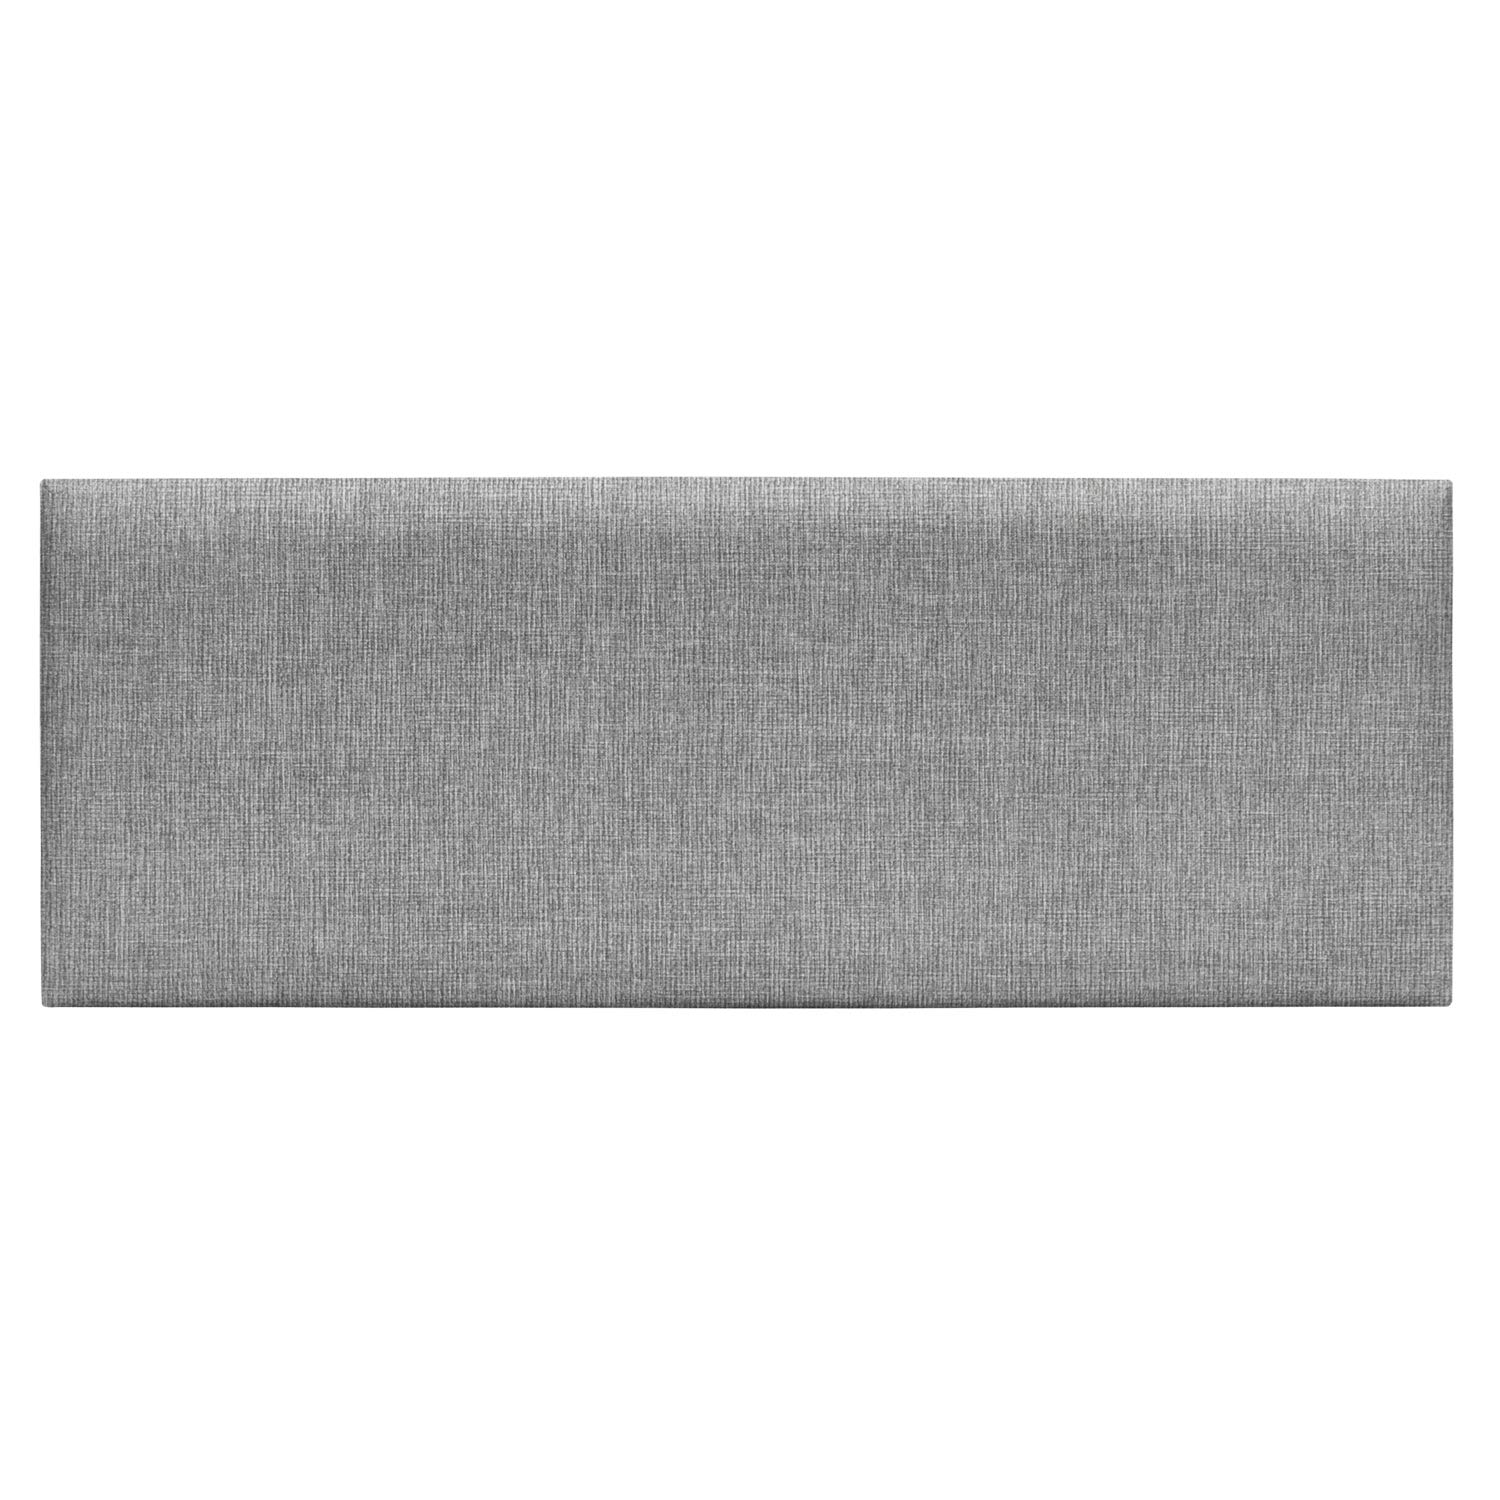 Upholstered Headboard Queen - Set of 8 panels Removable Accent Leather Wall Panels - Gray 31.5